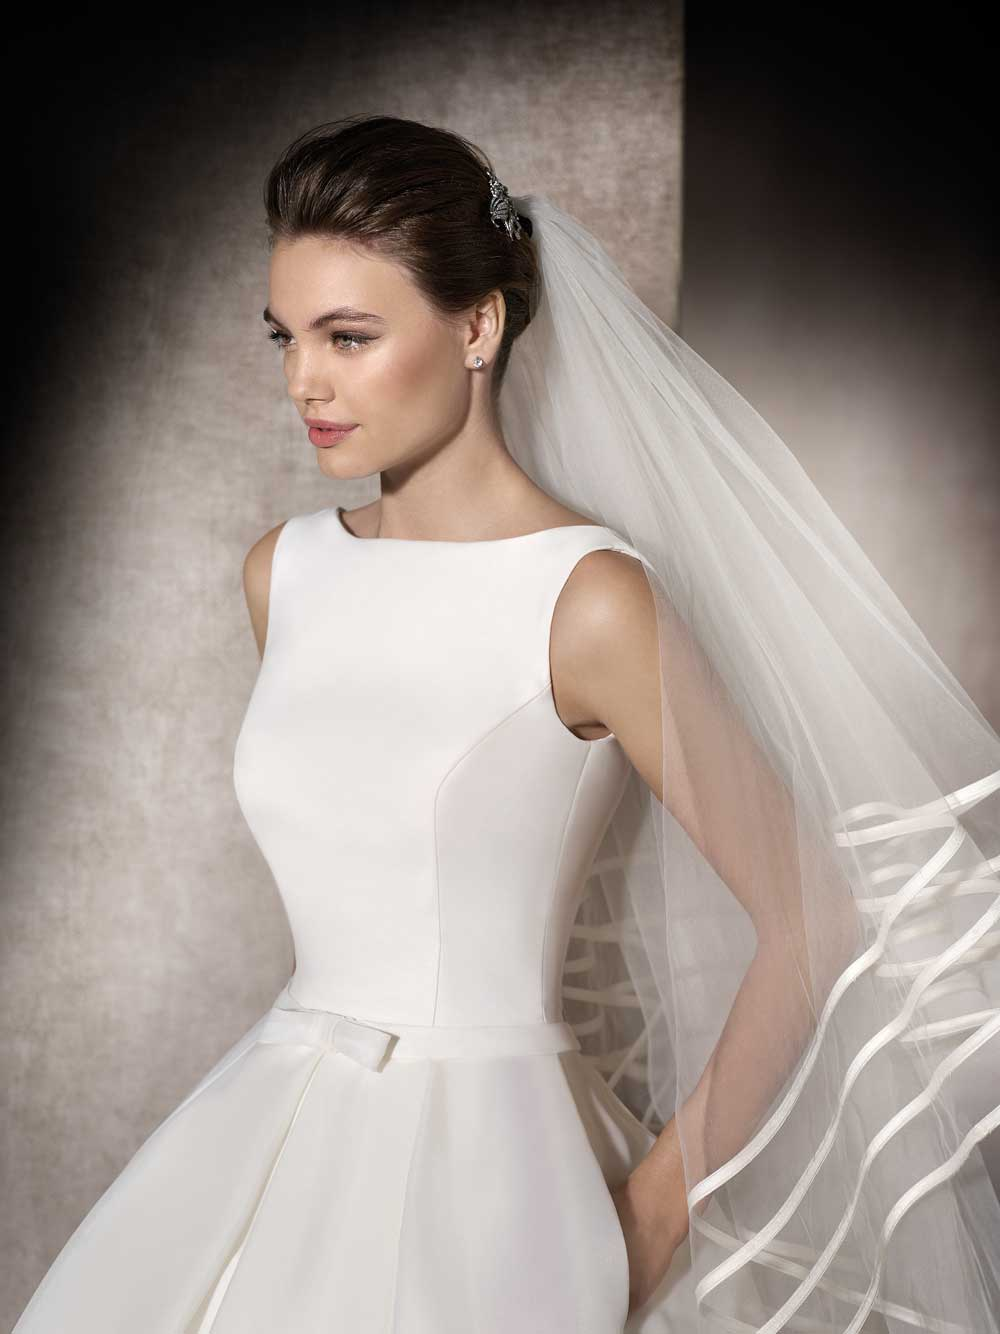 st patrick collection plain wedding dresses Merced A gorgeous silk wedding dress with a high plain neckline low scoop back thin waisted belt with a pretty flat bow and full pleated skirt